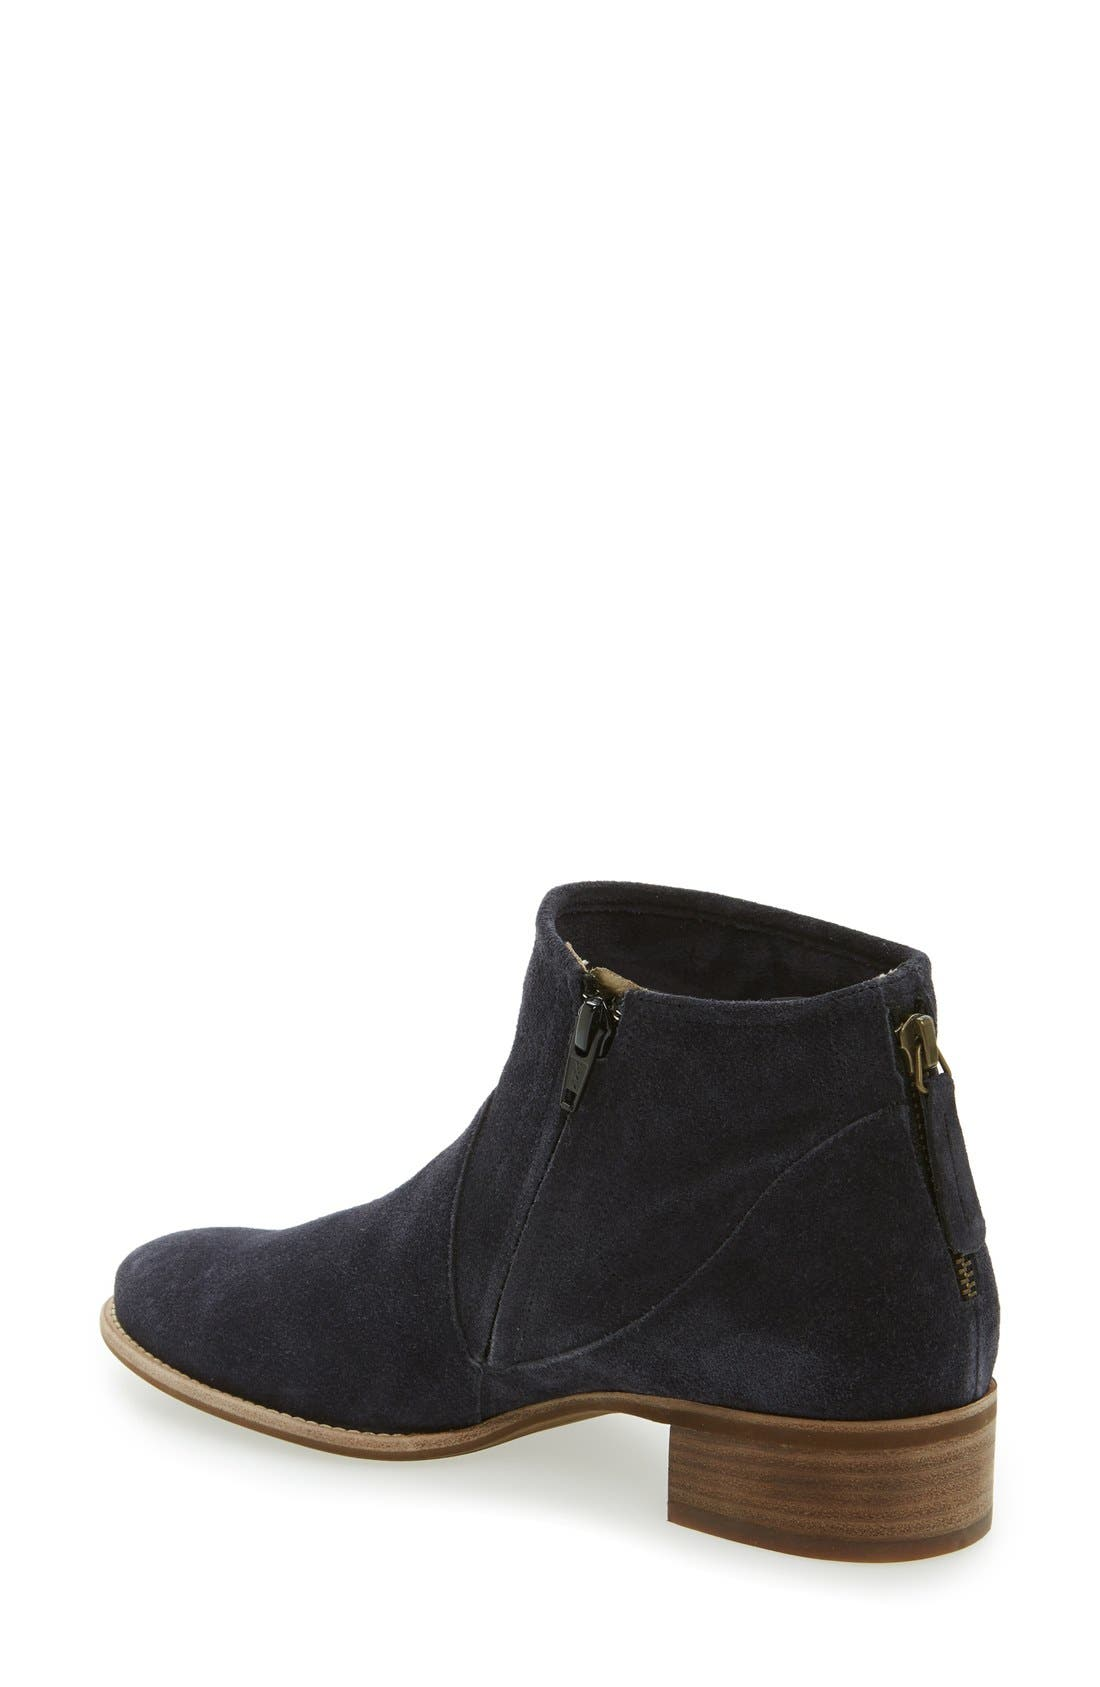 Logan Bootie,                             Alternate thumbnail 2, color,                             Navy Suede